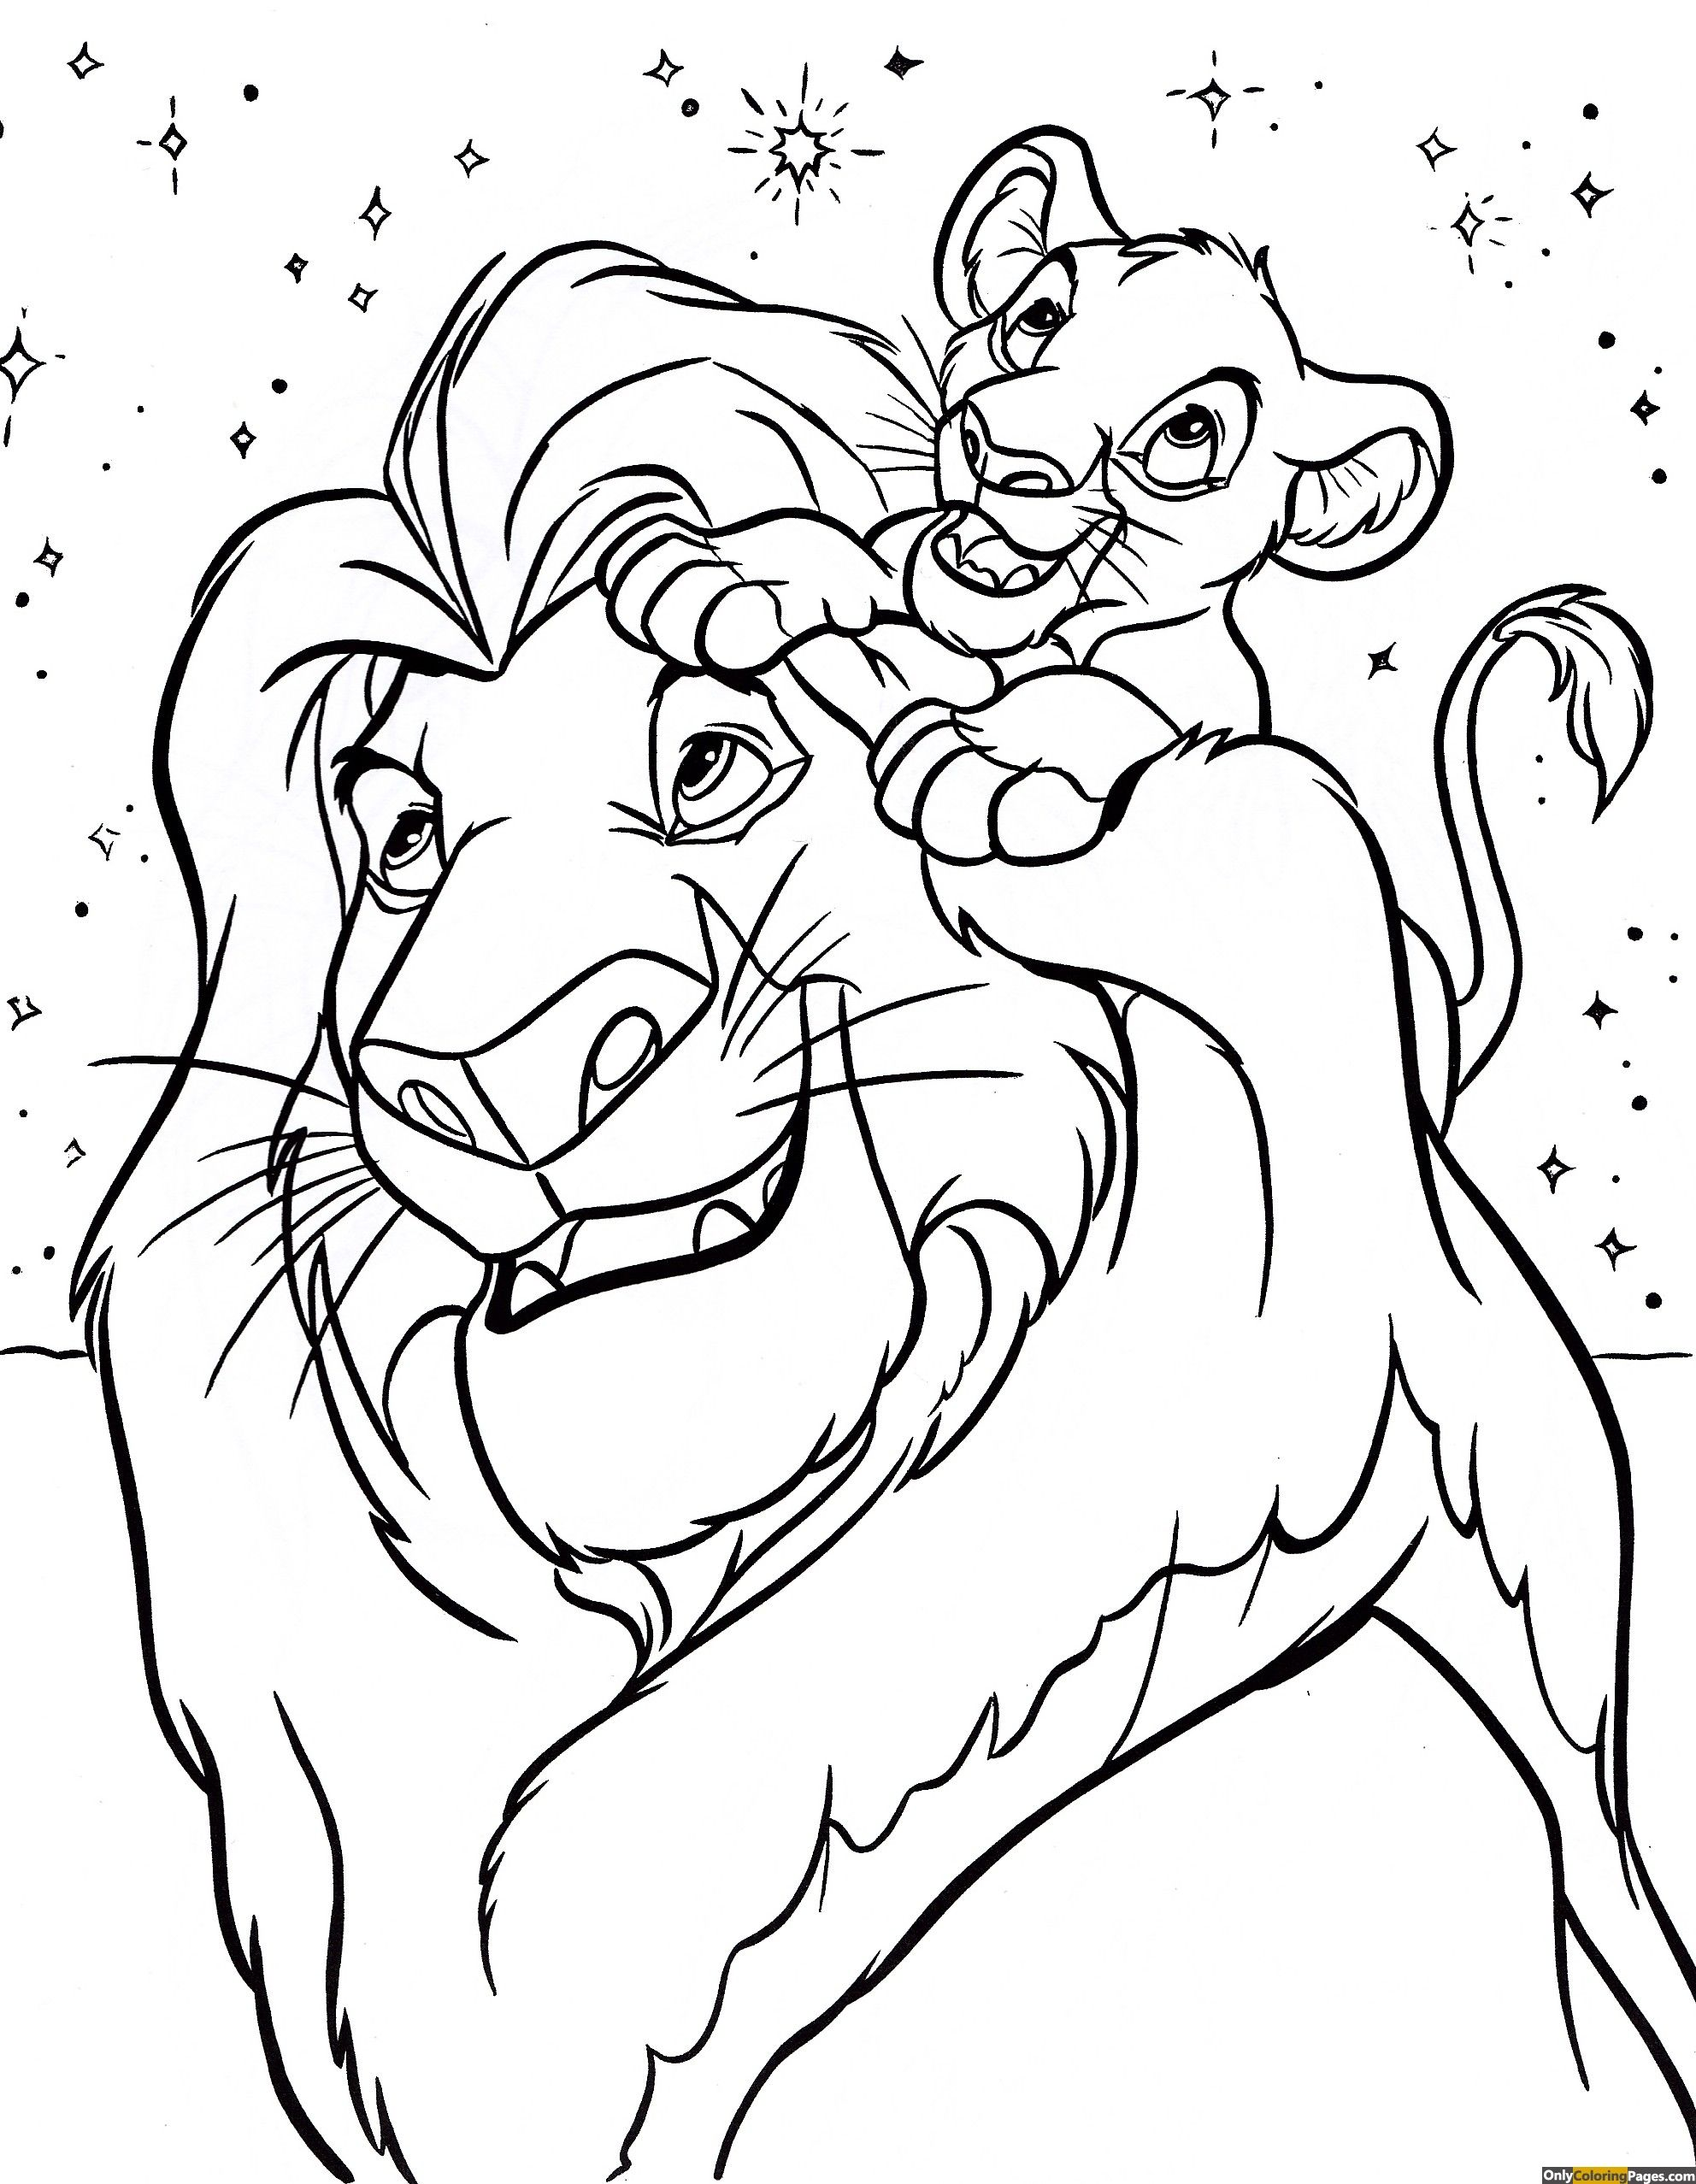 Disney Coloring Pages Lion King | Fun Crafts | Pinterest | Disney ...